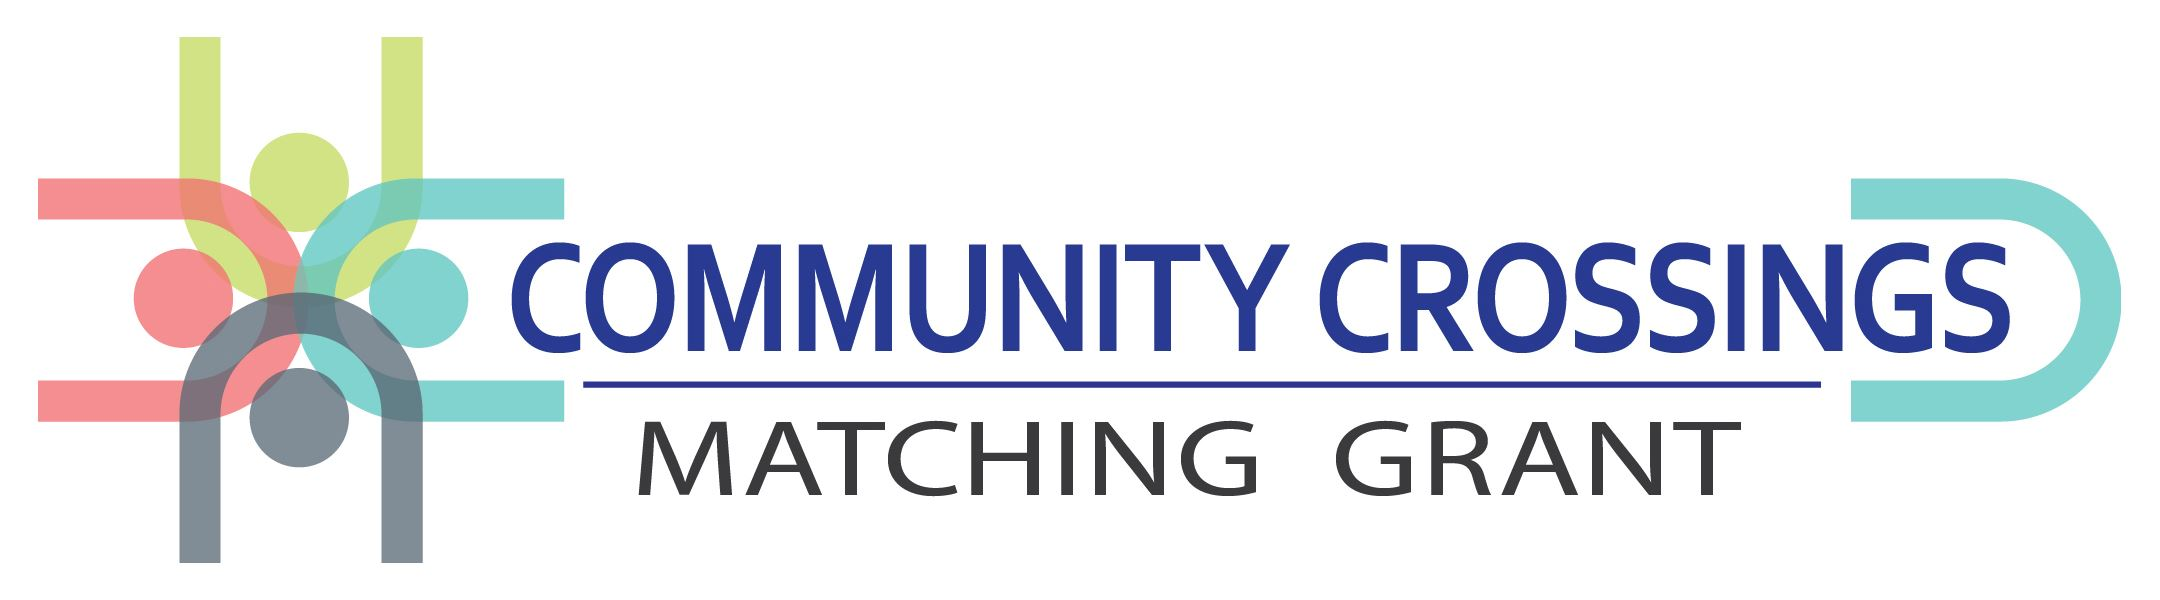 COMMUNITY_CROSSINGS_logo